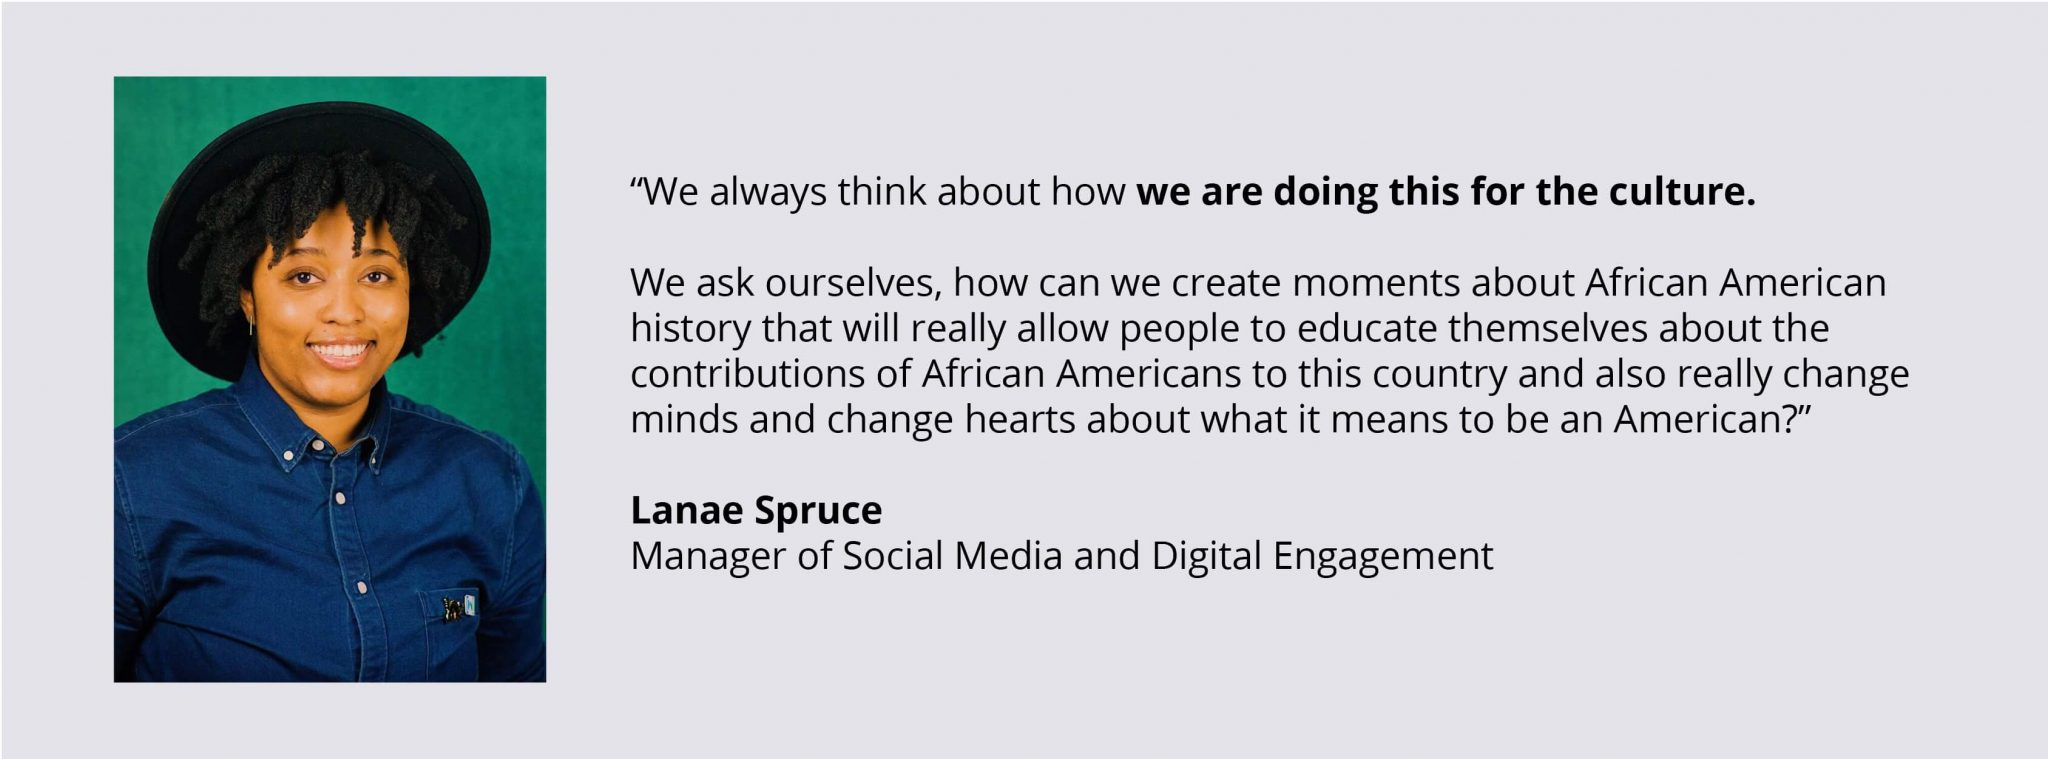 "Quote Image: ""We always think about how we are doing this for the culture. We ask ourselves, how can we create moments about African American history that will really allow people to educate themselves about the contributions of African Americans to this country and also really change minds and change hearts about what it means to be an American?"""